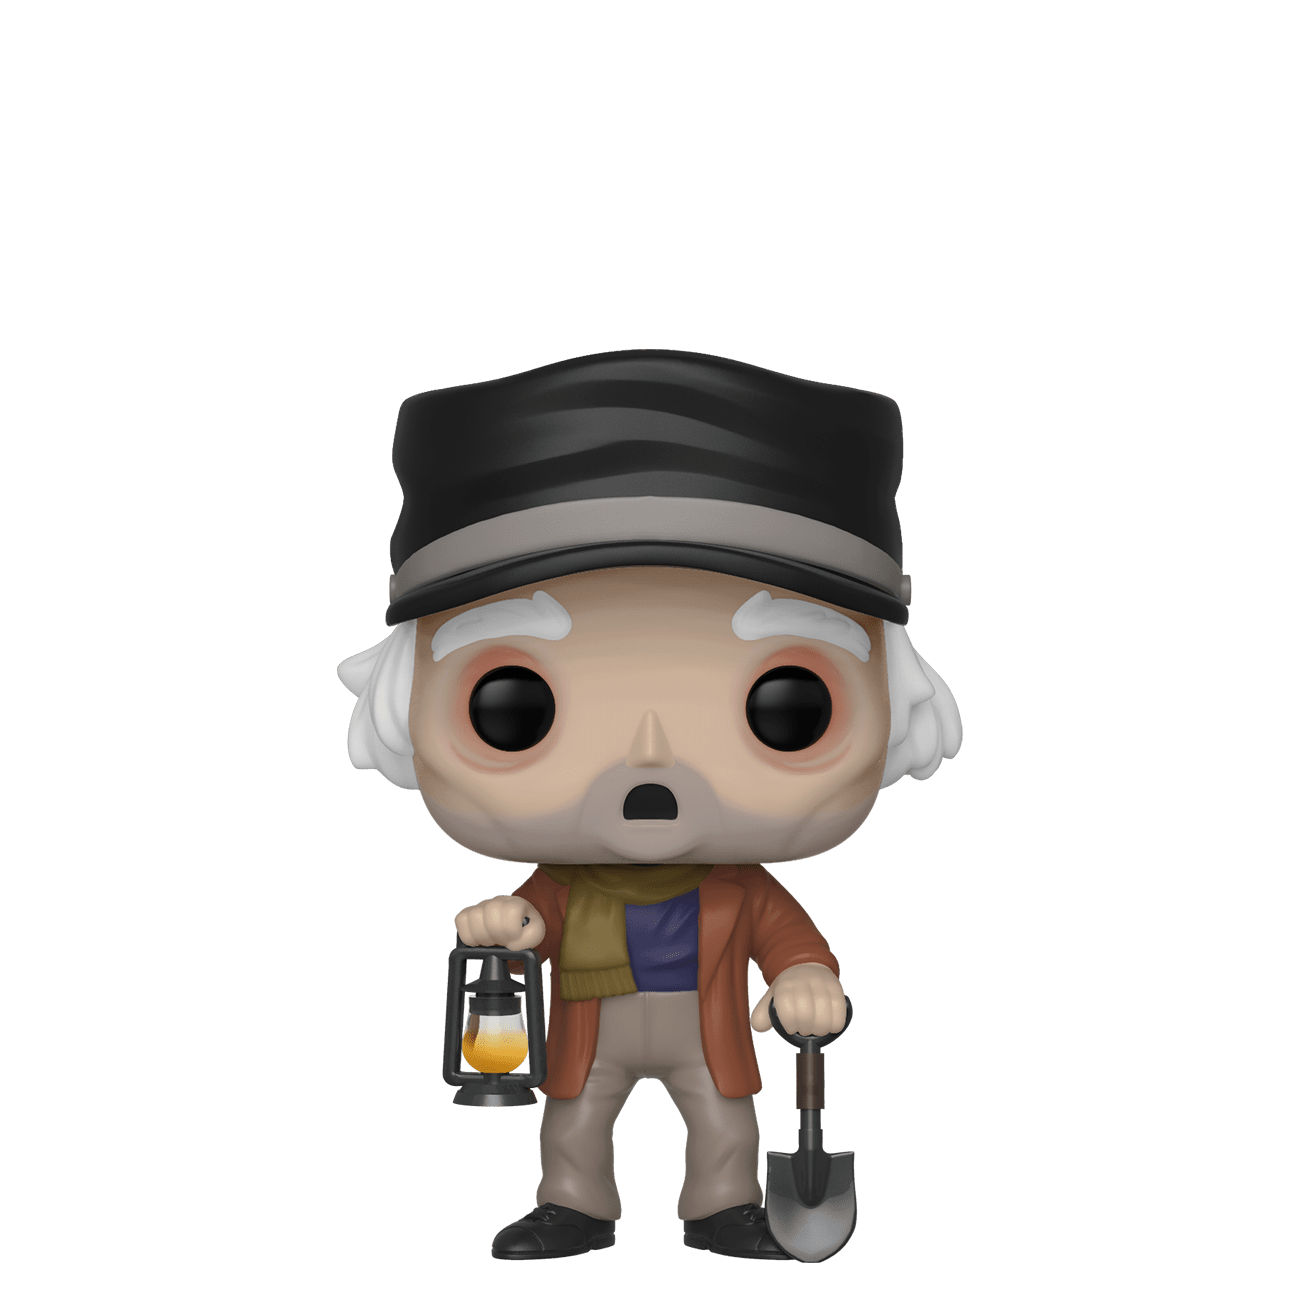 Haunted Mansion Funko POP! Collection Coming Soon 4